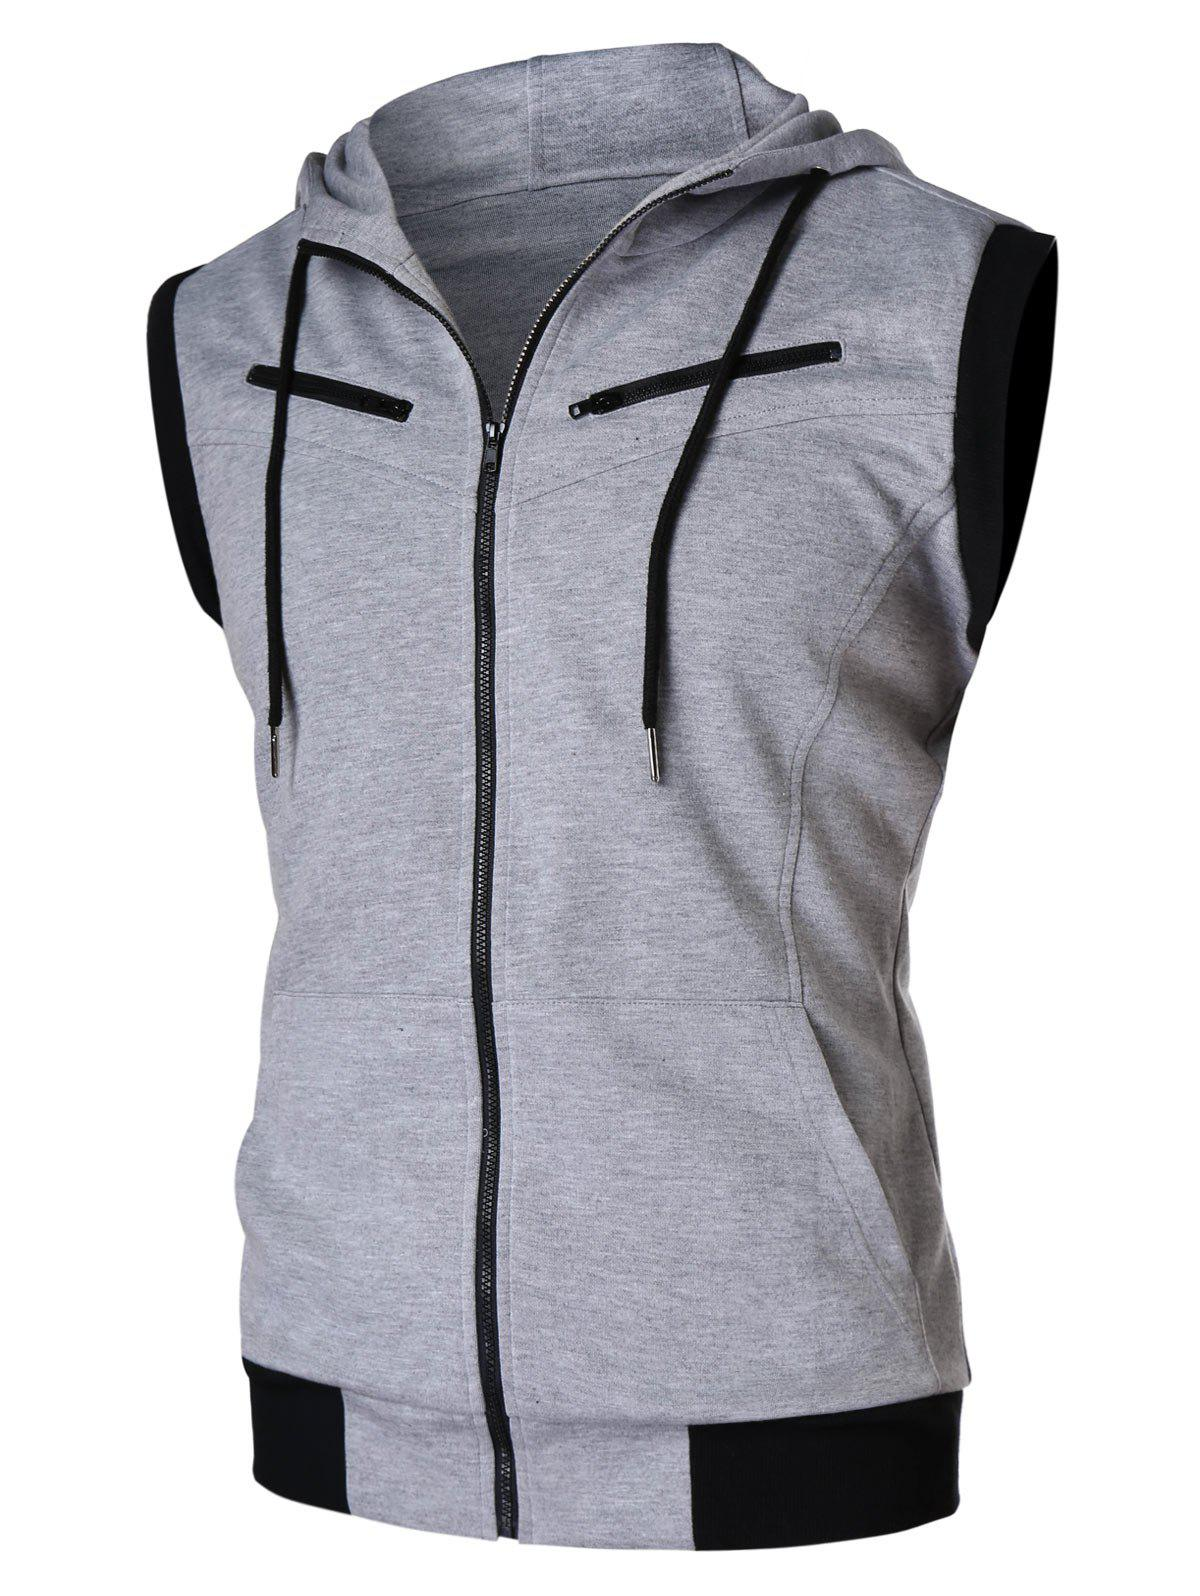 Shops Zipper Sleeveless Hooded Tank Top